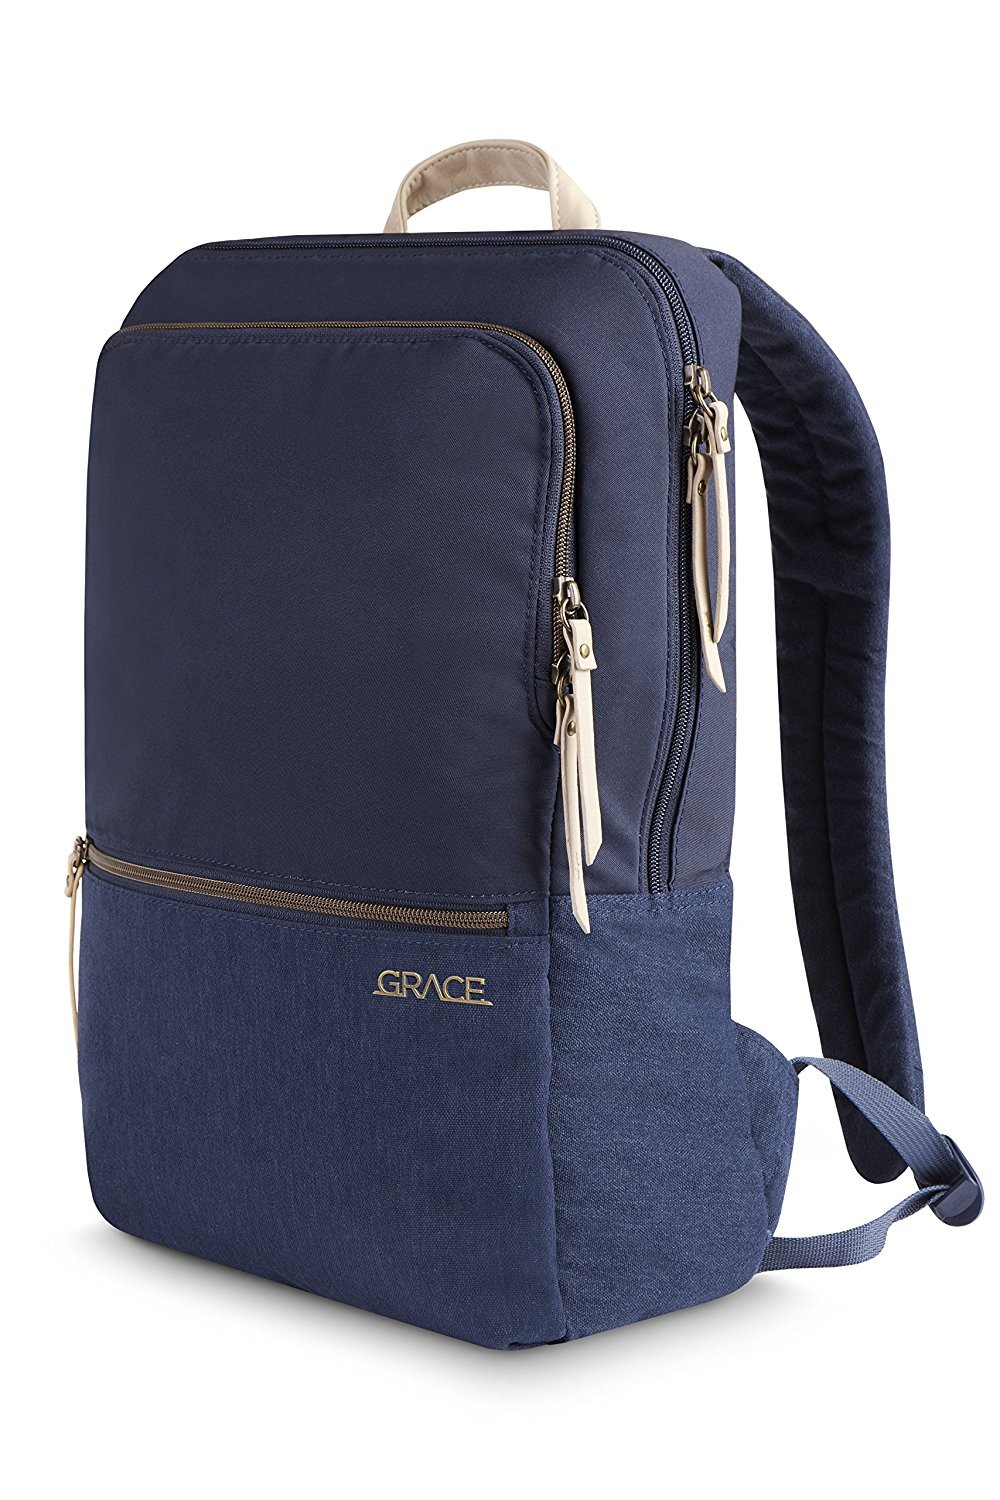 STM Grace backpack Polyester Blue